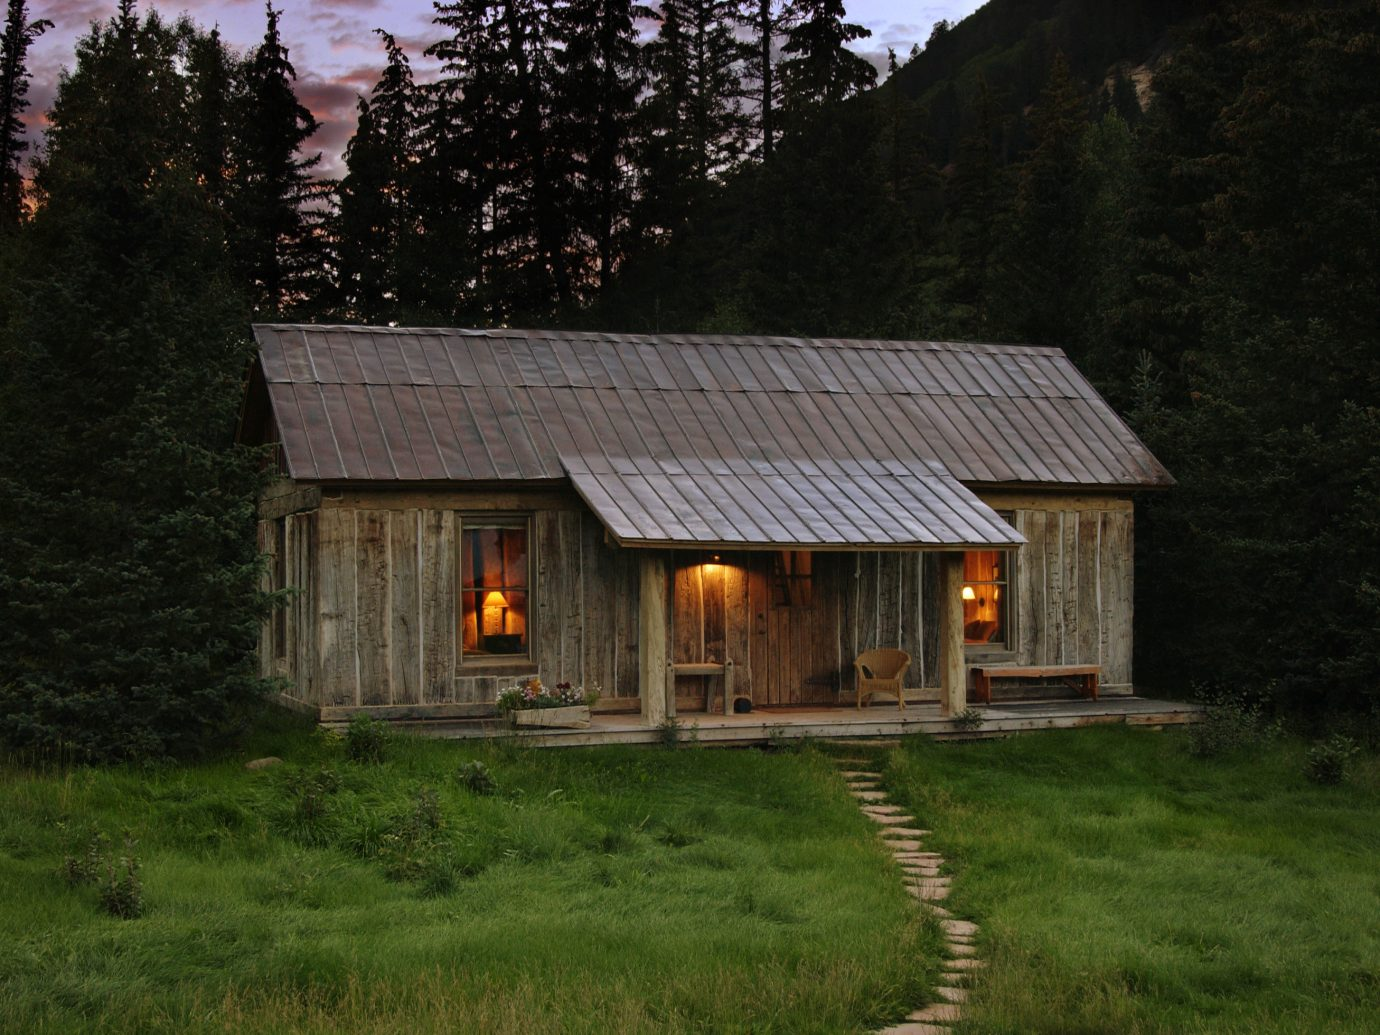 Boutique Hotels Fall Travel Hotels Outdoors + Adventure grass tree outdoor house home cottage property hut log cabin farmhouse building real estate shed rural area Farm landscape sky shack wood green wooden old siding roof estate evening barn facade grassy stone pasture lush hillside surrounded